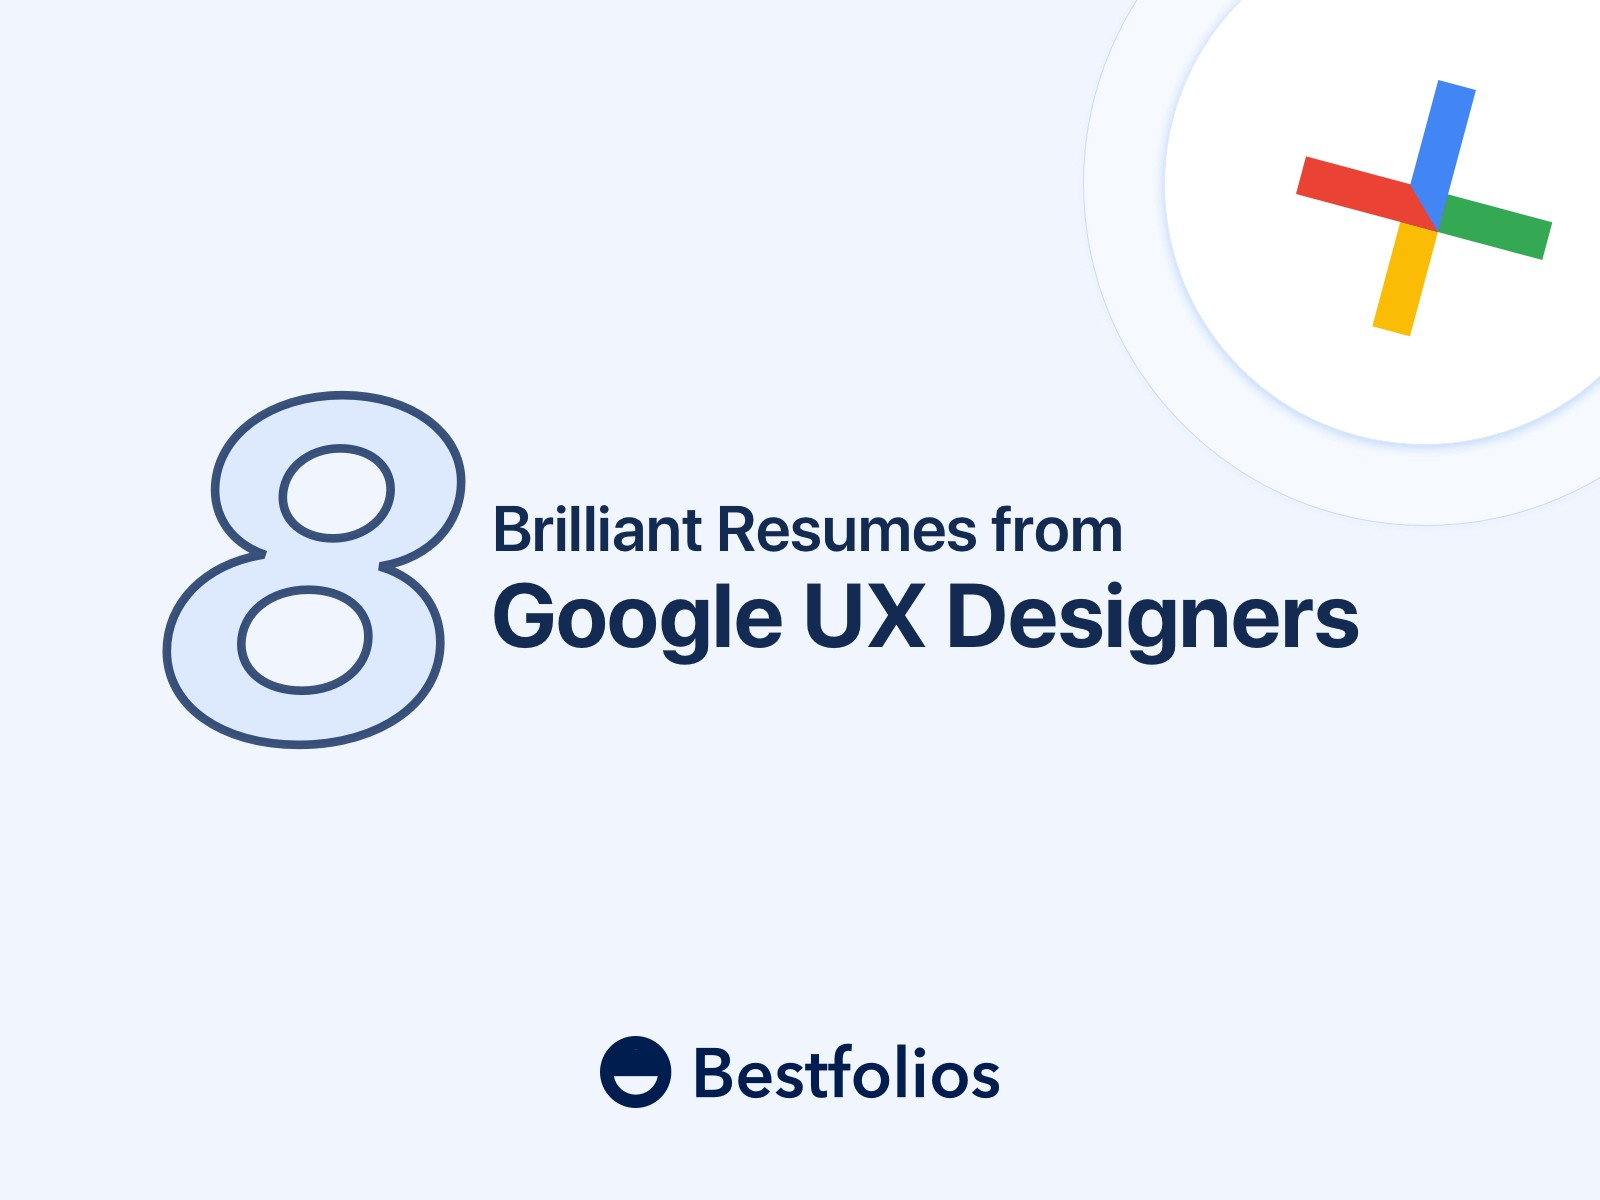 8 Brilliant Ux Designer Resumes That Secured Job Offers From Google By Bestfolios Com Bestfolios Medium